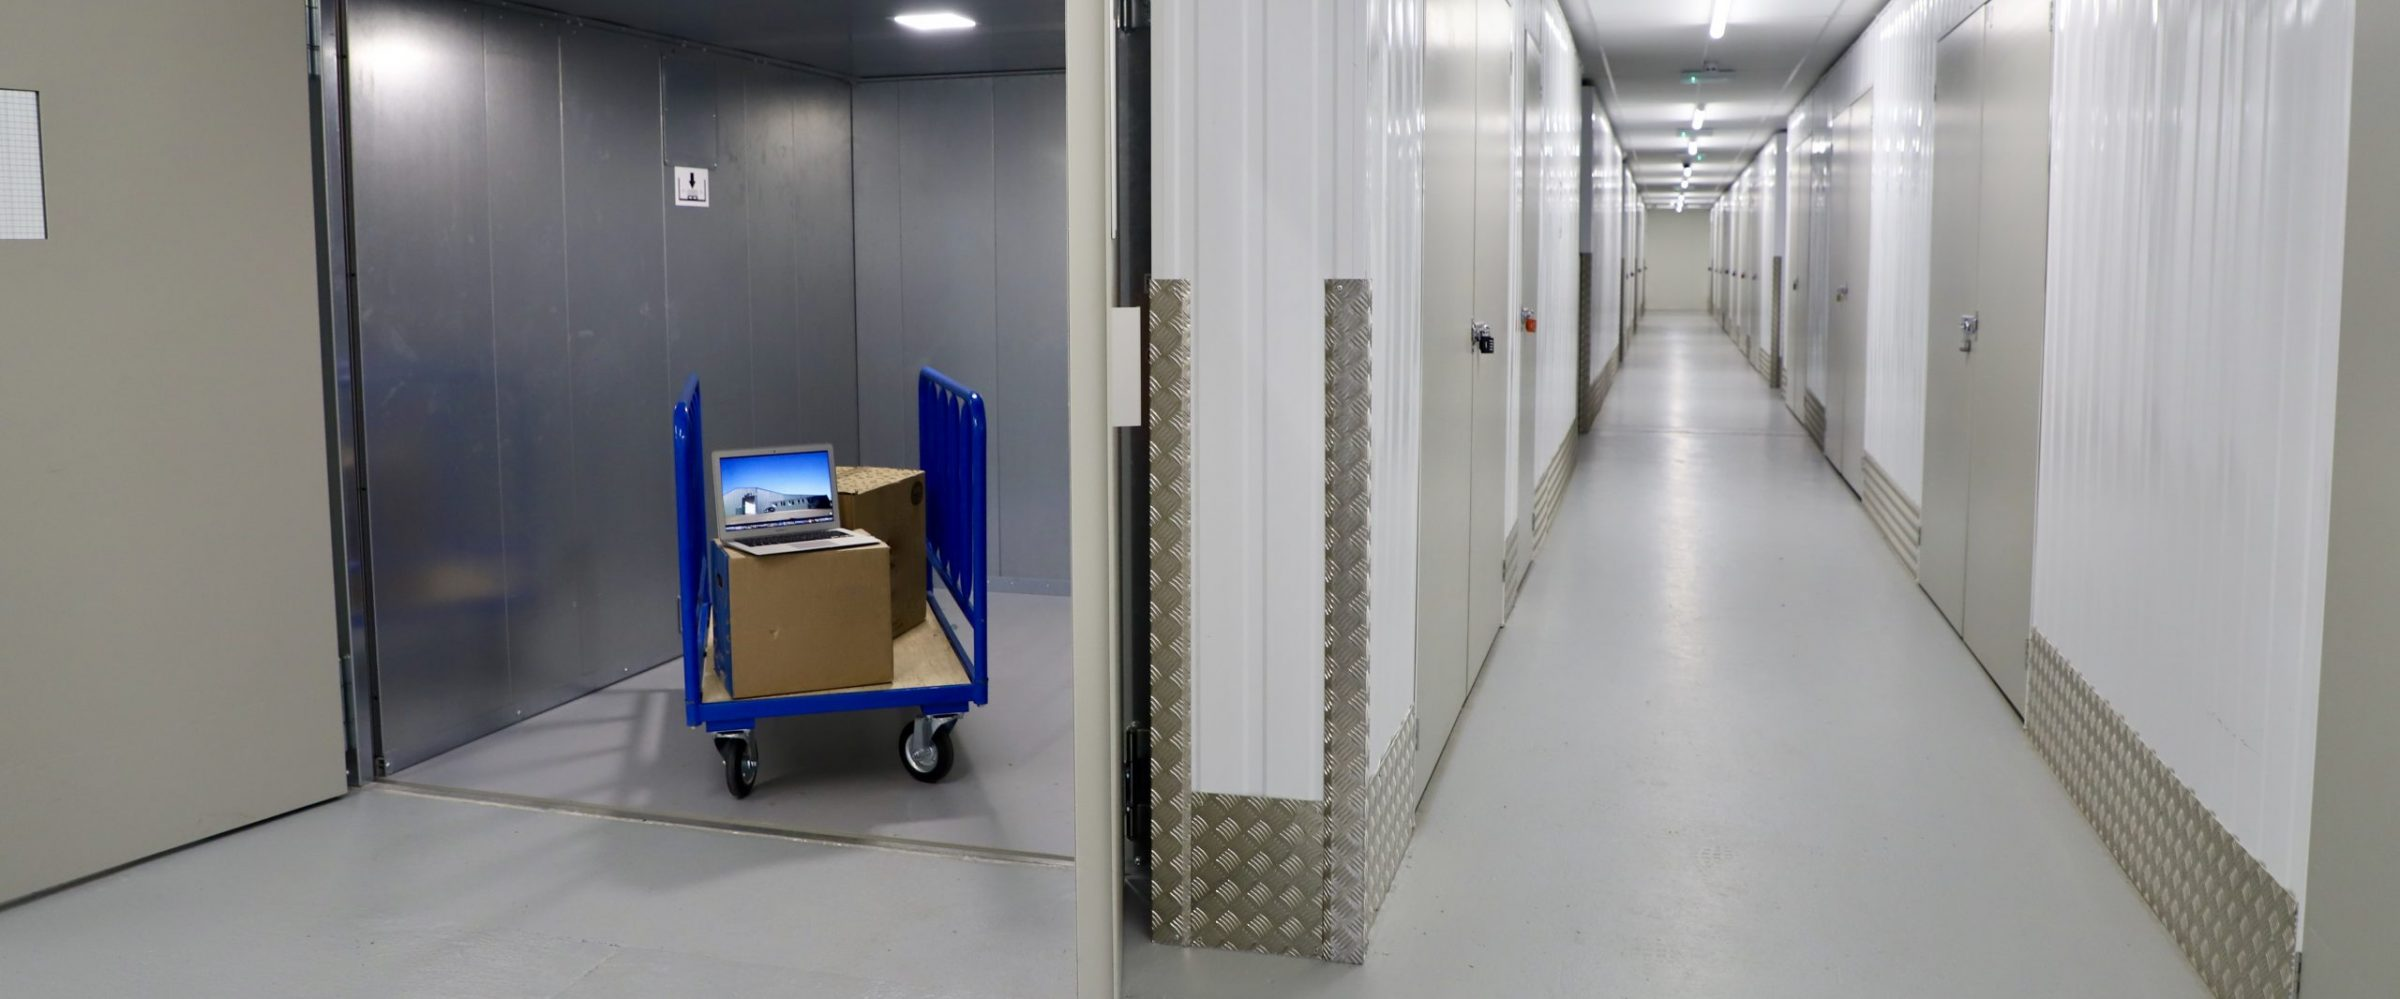 Thanet self storage works for business users too. Lift and flexible choice of units.